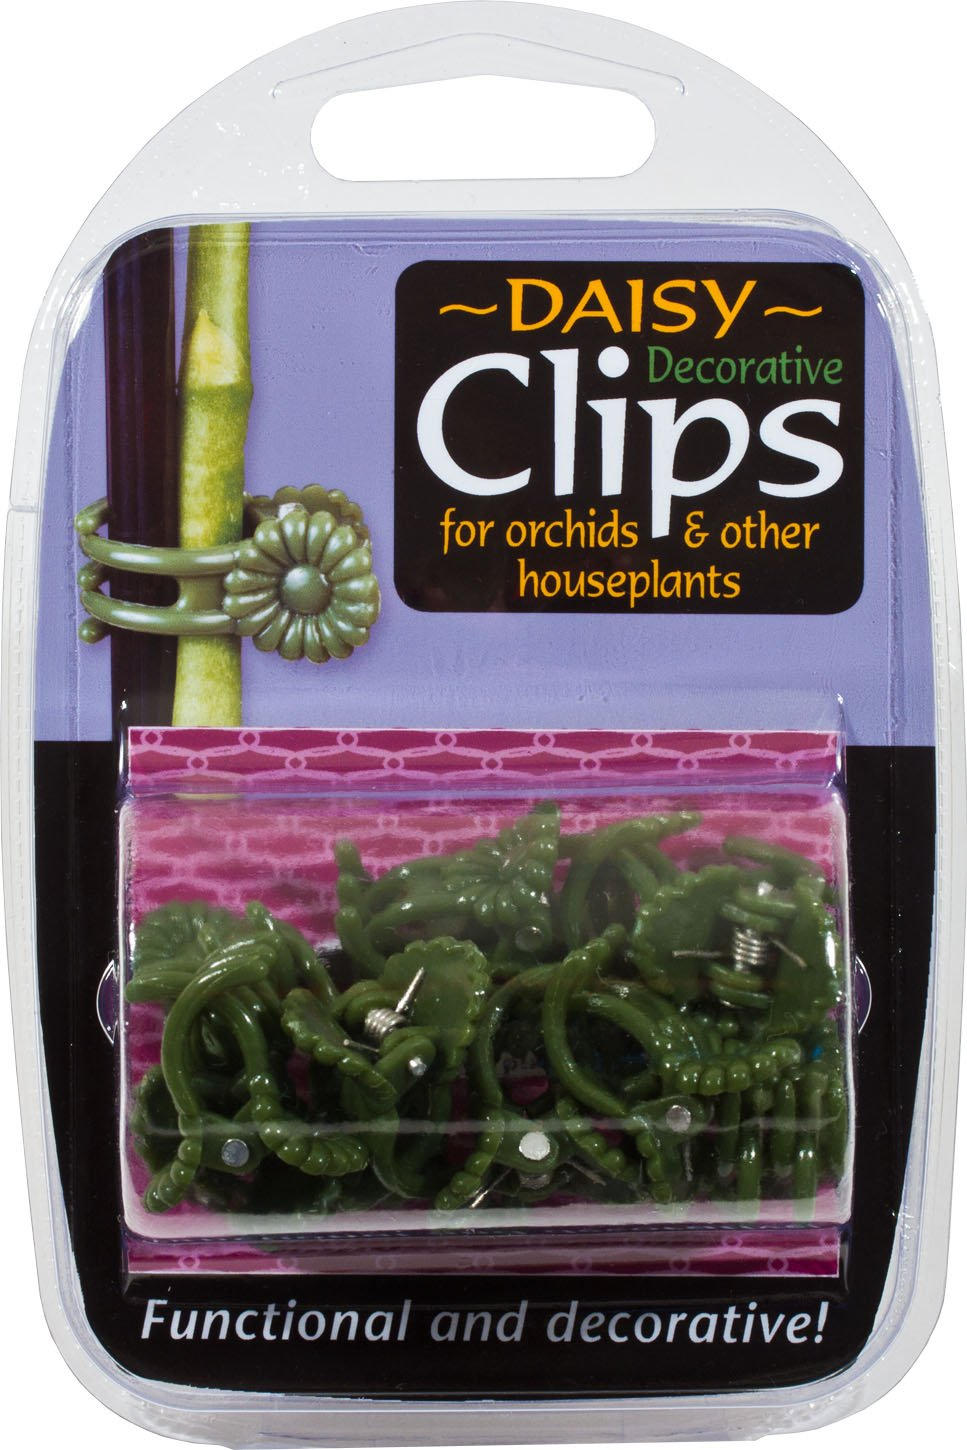 Growth Technology SUPCDA12 Plastic Decorative Daisy Plant Clips (Pack of 12) Growth Technology Ltd